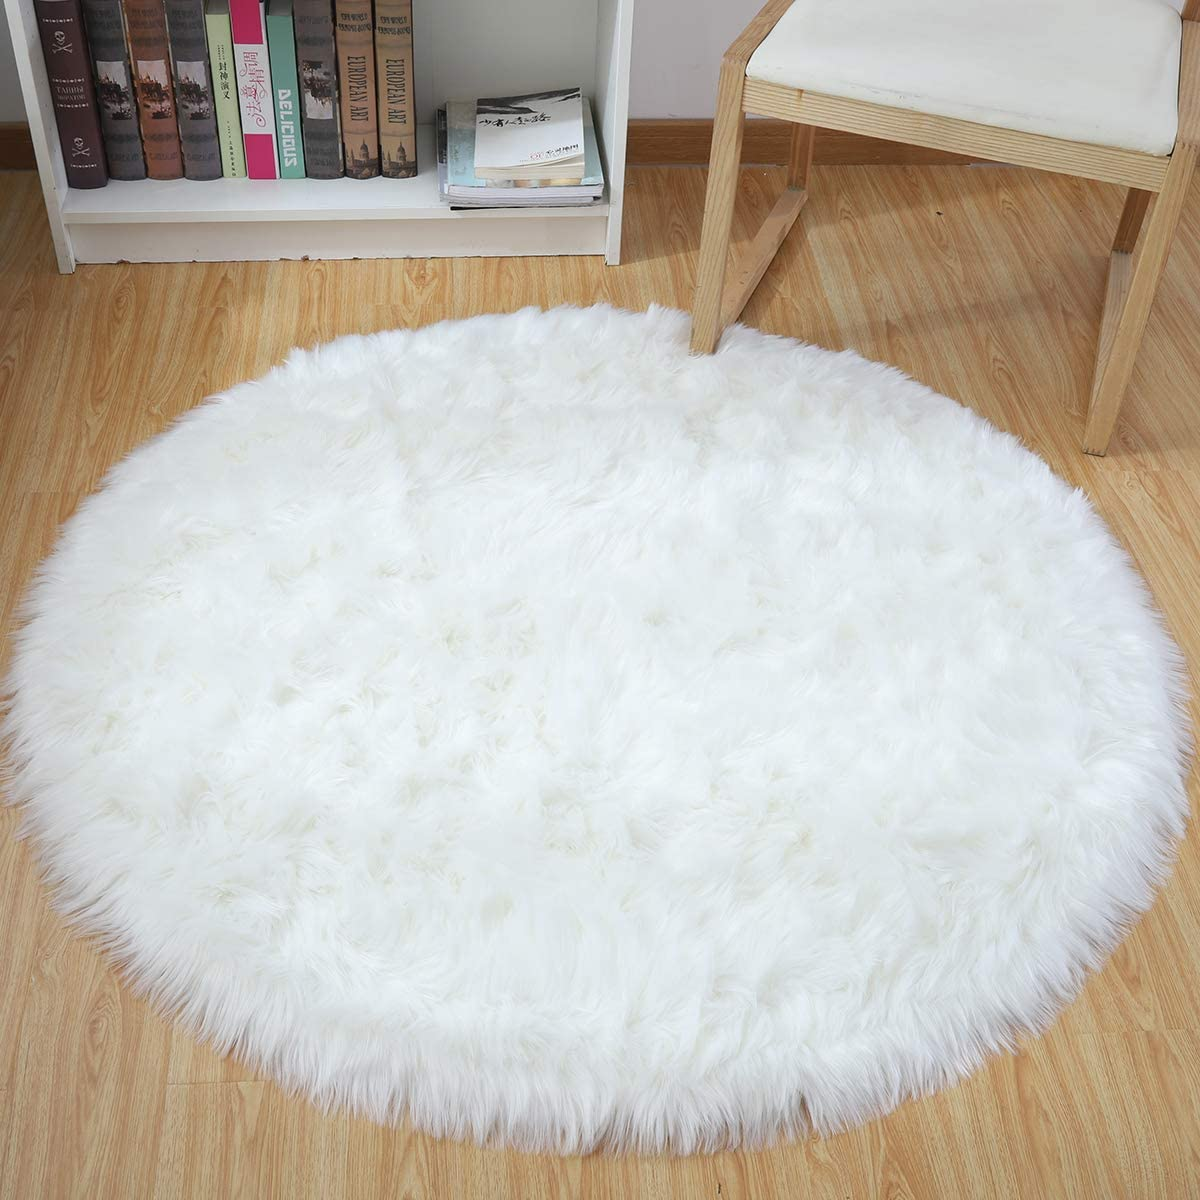 Noahas Faux Sheepskin Area Rugs Silky Long Wool Carpet for Living Room Bedroom, Children Play Dormitory Home Decor Rug, 4 Feet, White